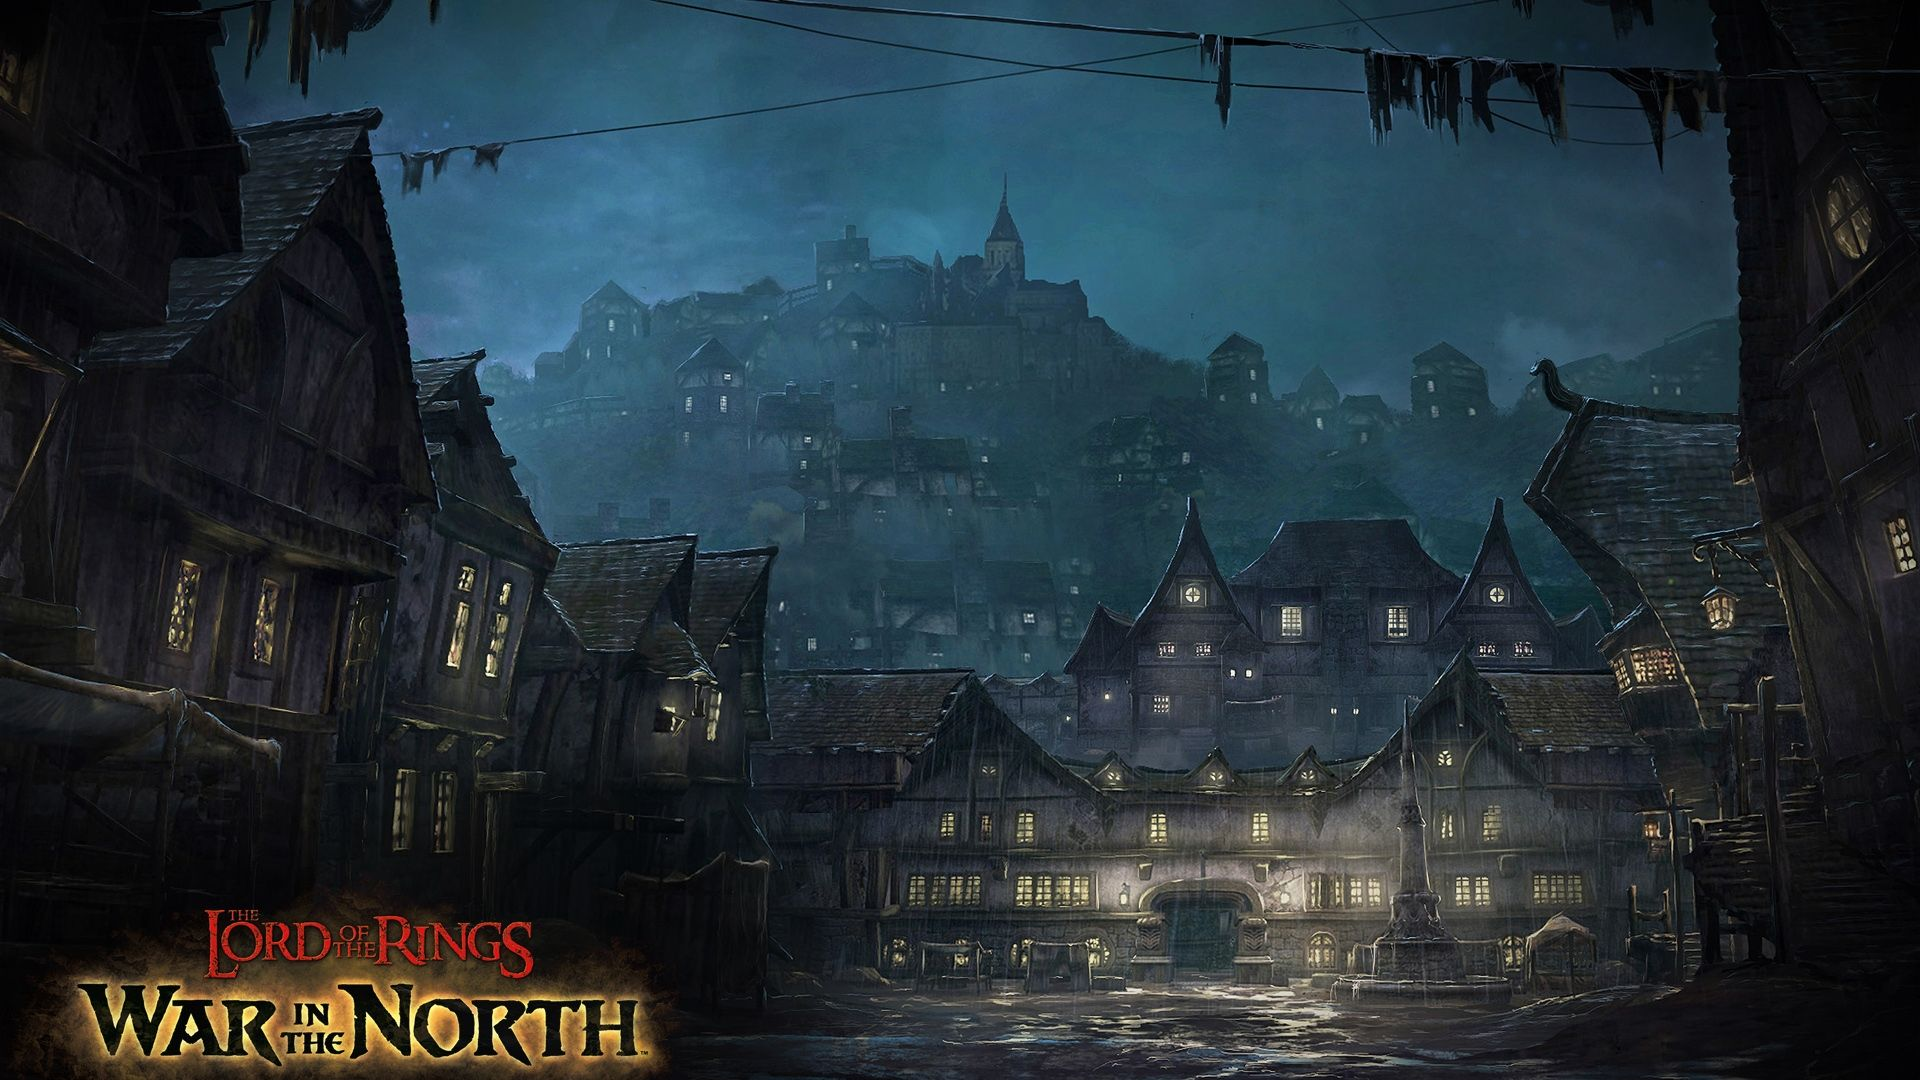 The town of Bree from The Lord of the Rings game War In